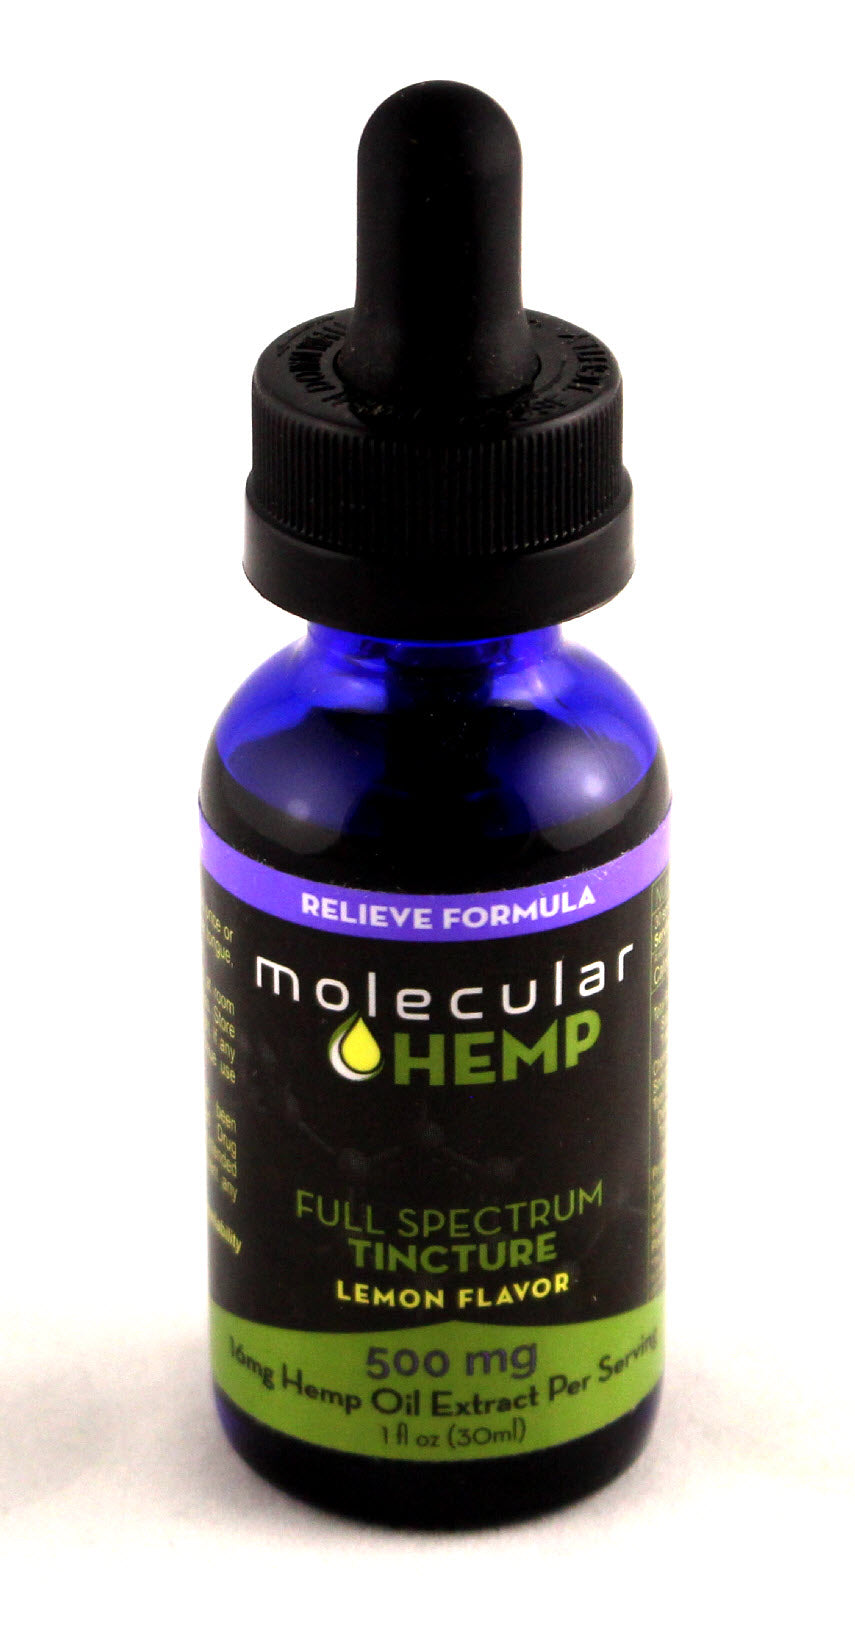 500 mg Relieve Formula Full Spectrum CBD and MCT Oil Tincture, Lemon  Flavor-16 mg CBD rich extract per serving